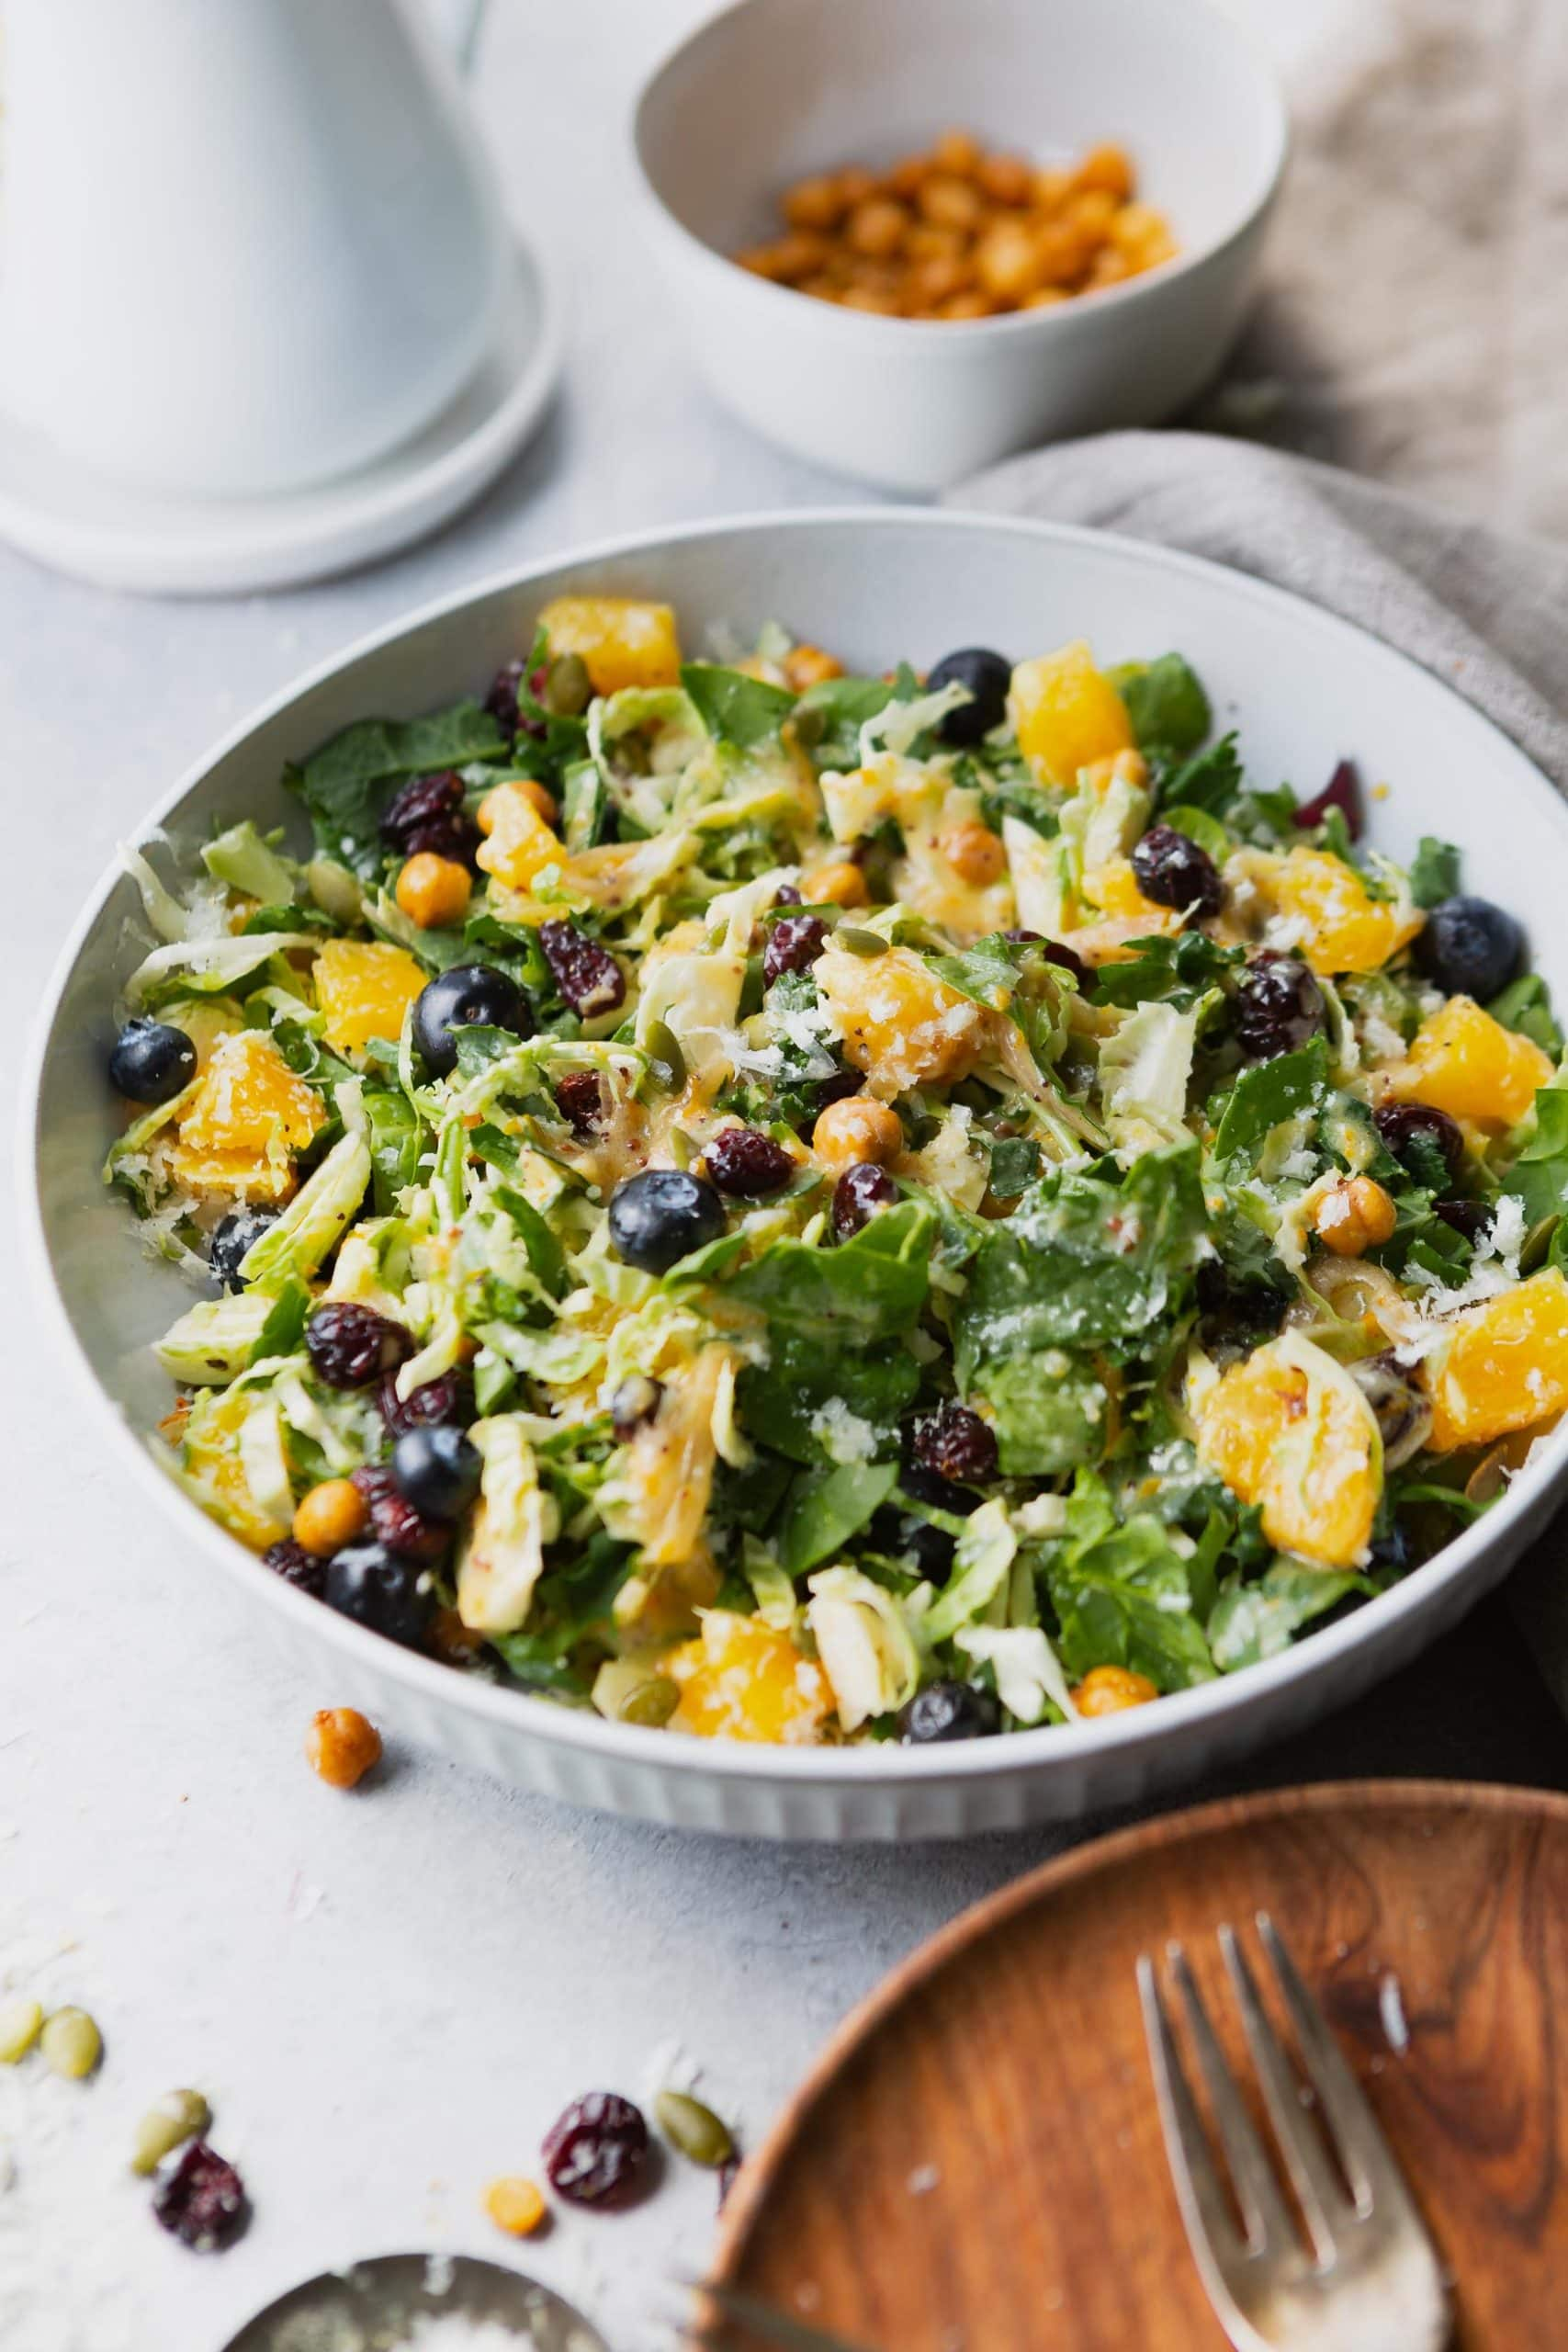 a photo of a large white serving bowl full of mixed greens. the salad has chunks of oranges, blueberries, craisins, roasted chickpeas, and shredded manchego salad in it.